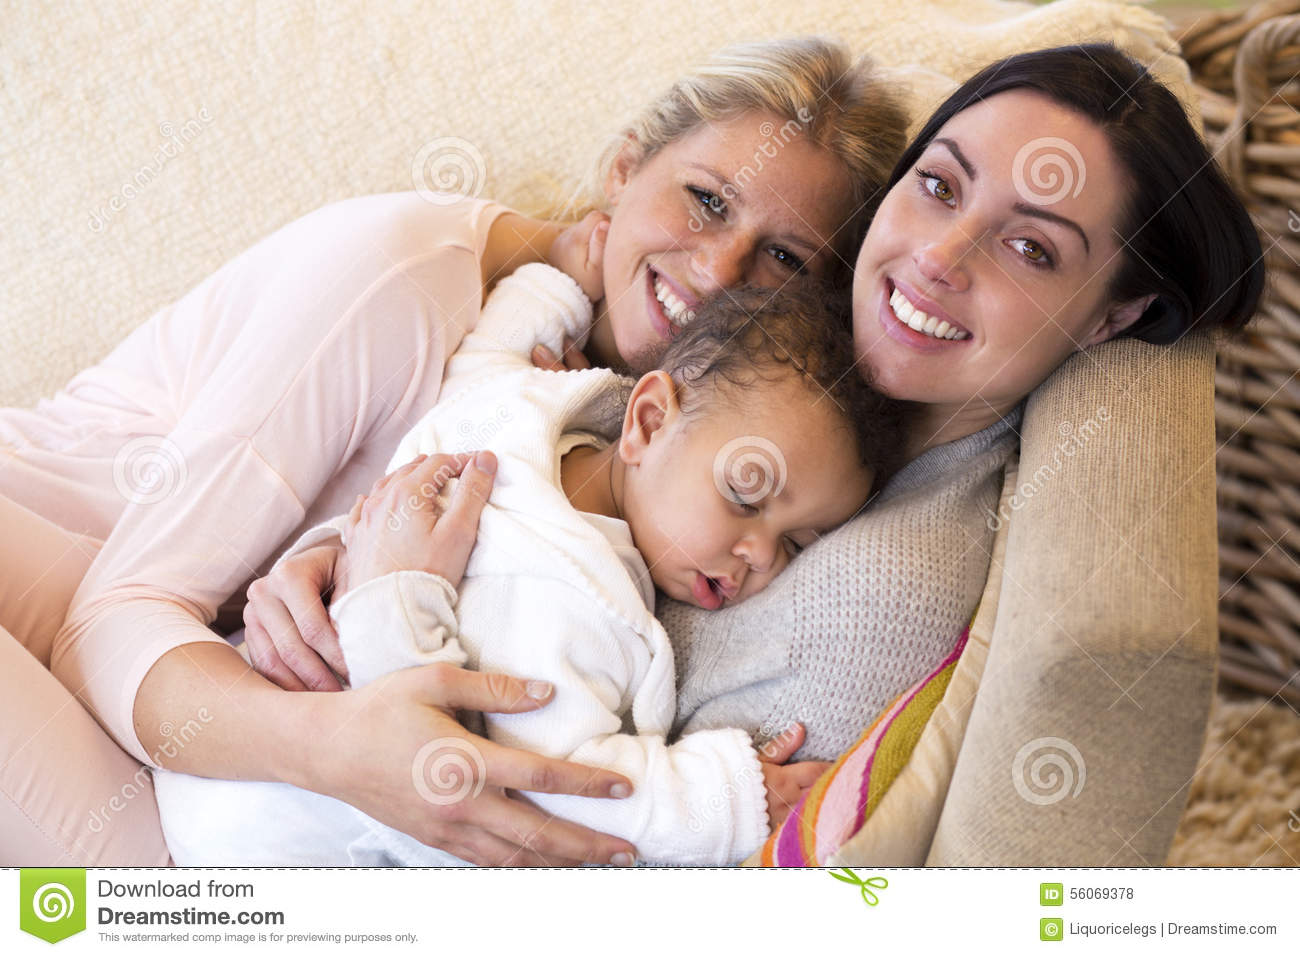 Same sex couple snuggling with their baby son